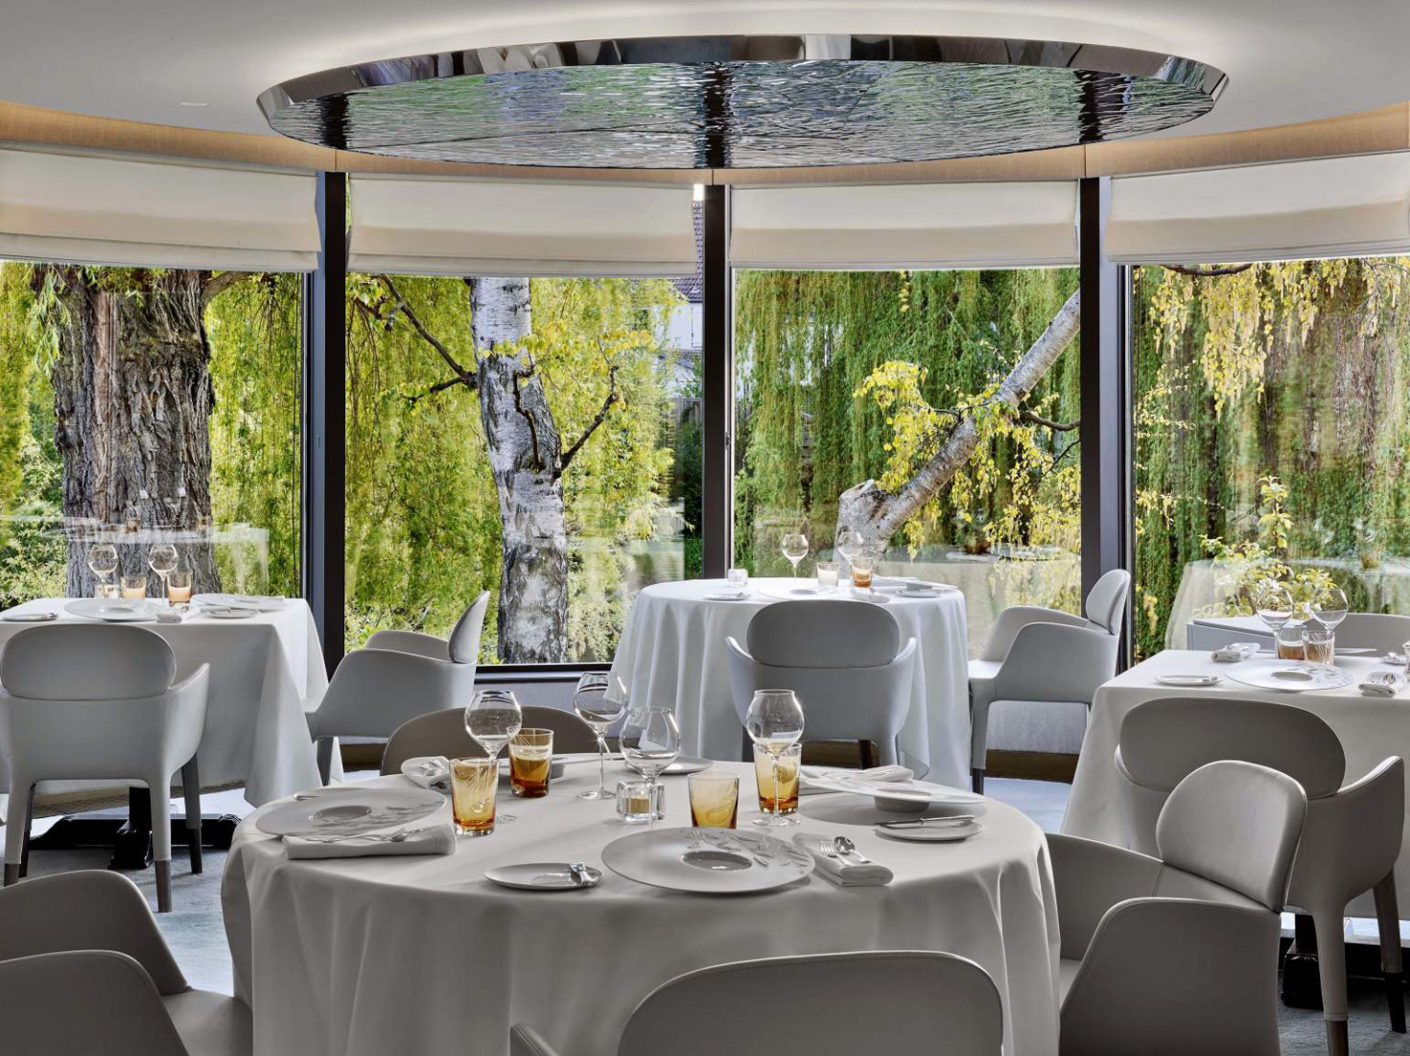 """Perfect enjoyment requires a comfortable seat: in the 3-star restaurant """"L' Auberge de l' Ill"""" the guest can sit on """"Ester"""" chairs and armchairs by Pedrali."""